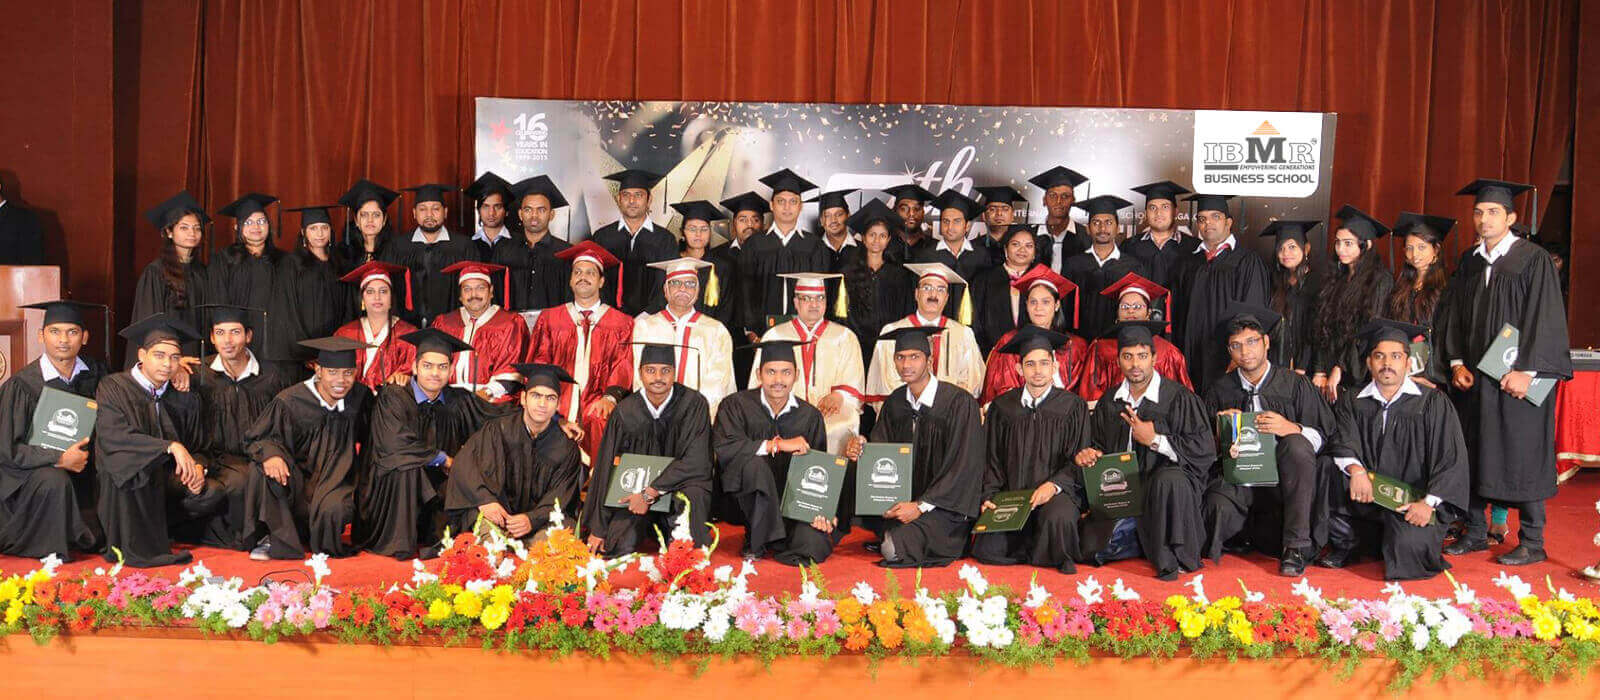 IBMR Convocation